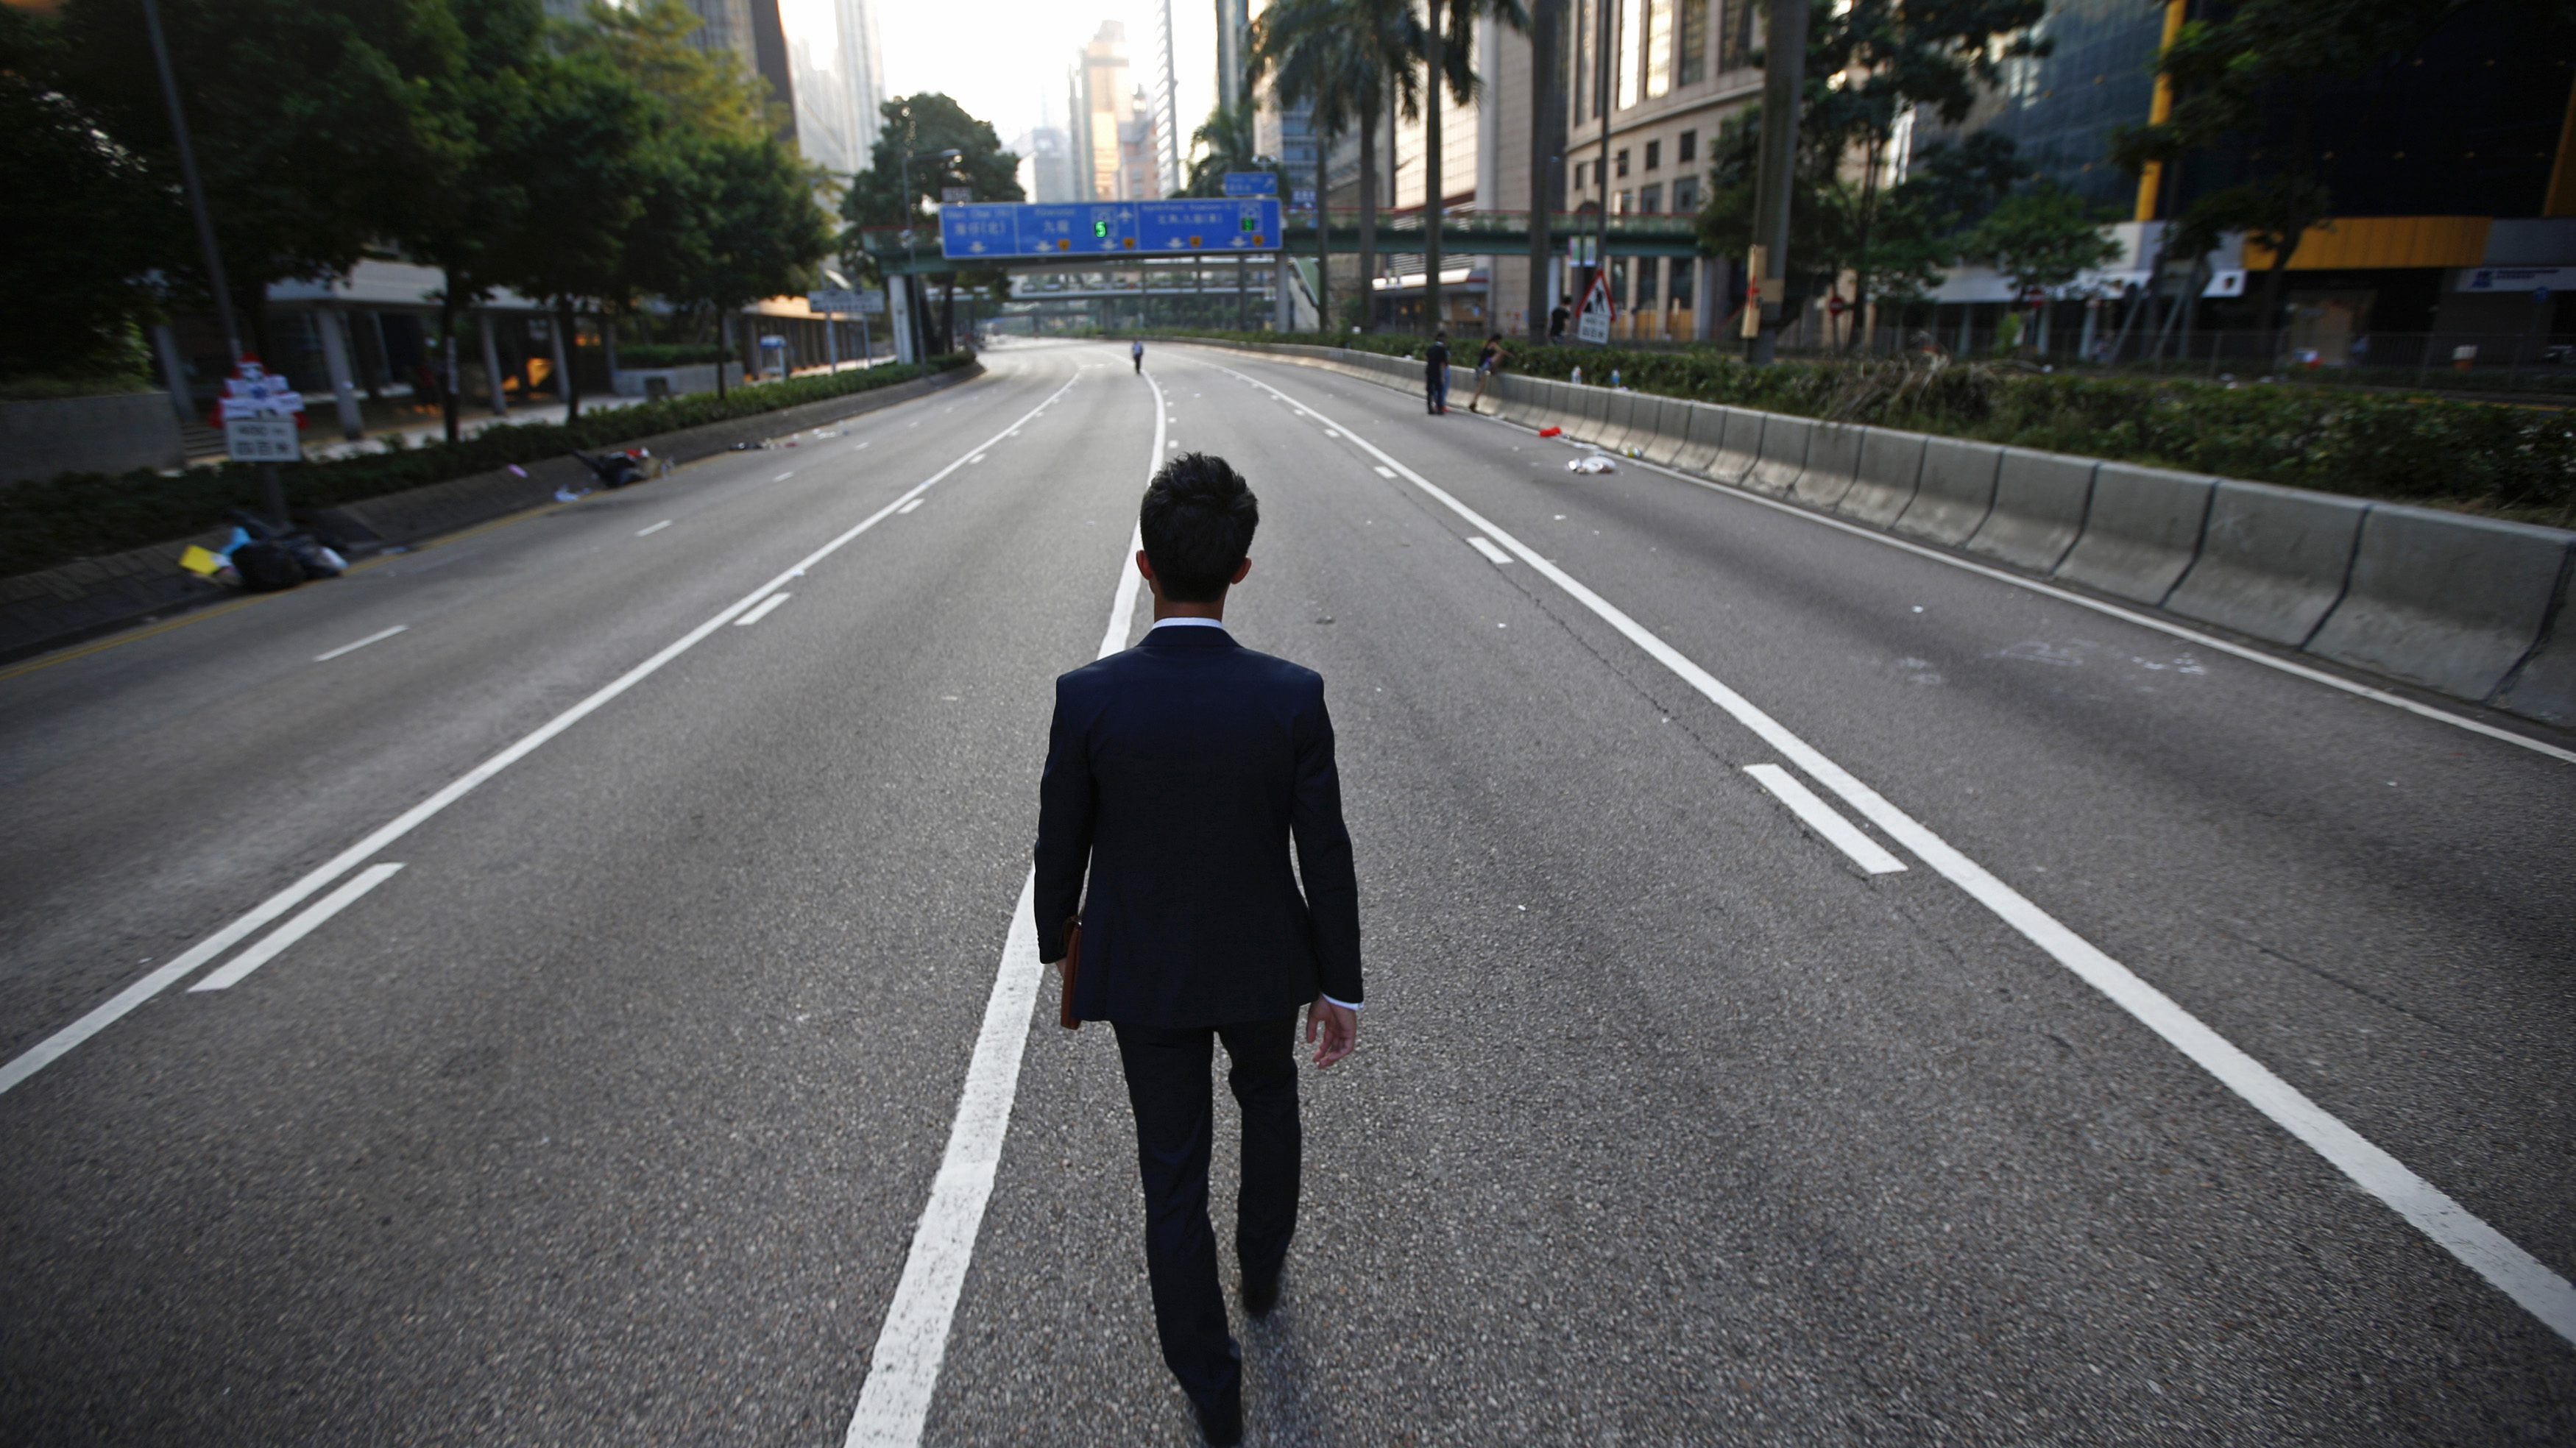 A man walks along an empty street near the central financial district in Hong Kong September 30, 2014. Tens of thousands of pro-democracy protesters extended a blockade of Hong Kong streets on Tuesday, stockpiling supplies and erecting makeshift barricades ahead of what some fear may be a push by police to clear the roads before Chinese National Day.   (CHINA - Tags: POLITICS CIVIL UNREST) - GM1EA9U0PXM01